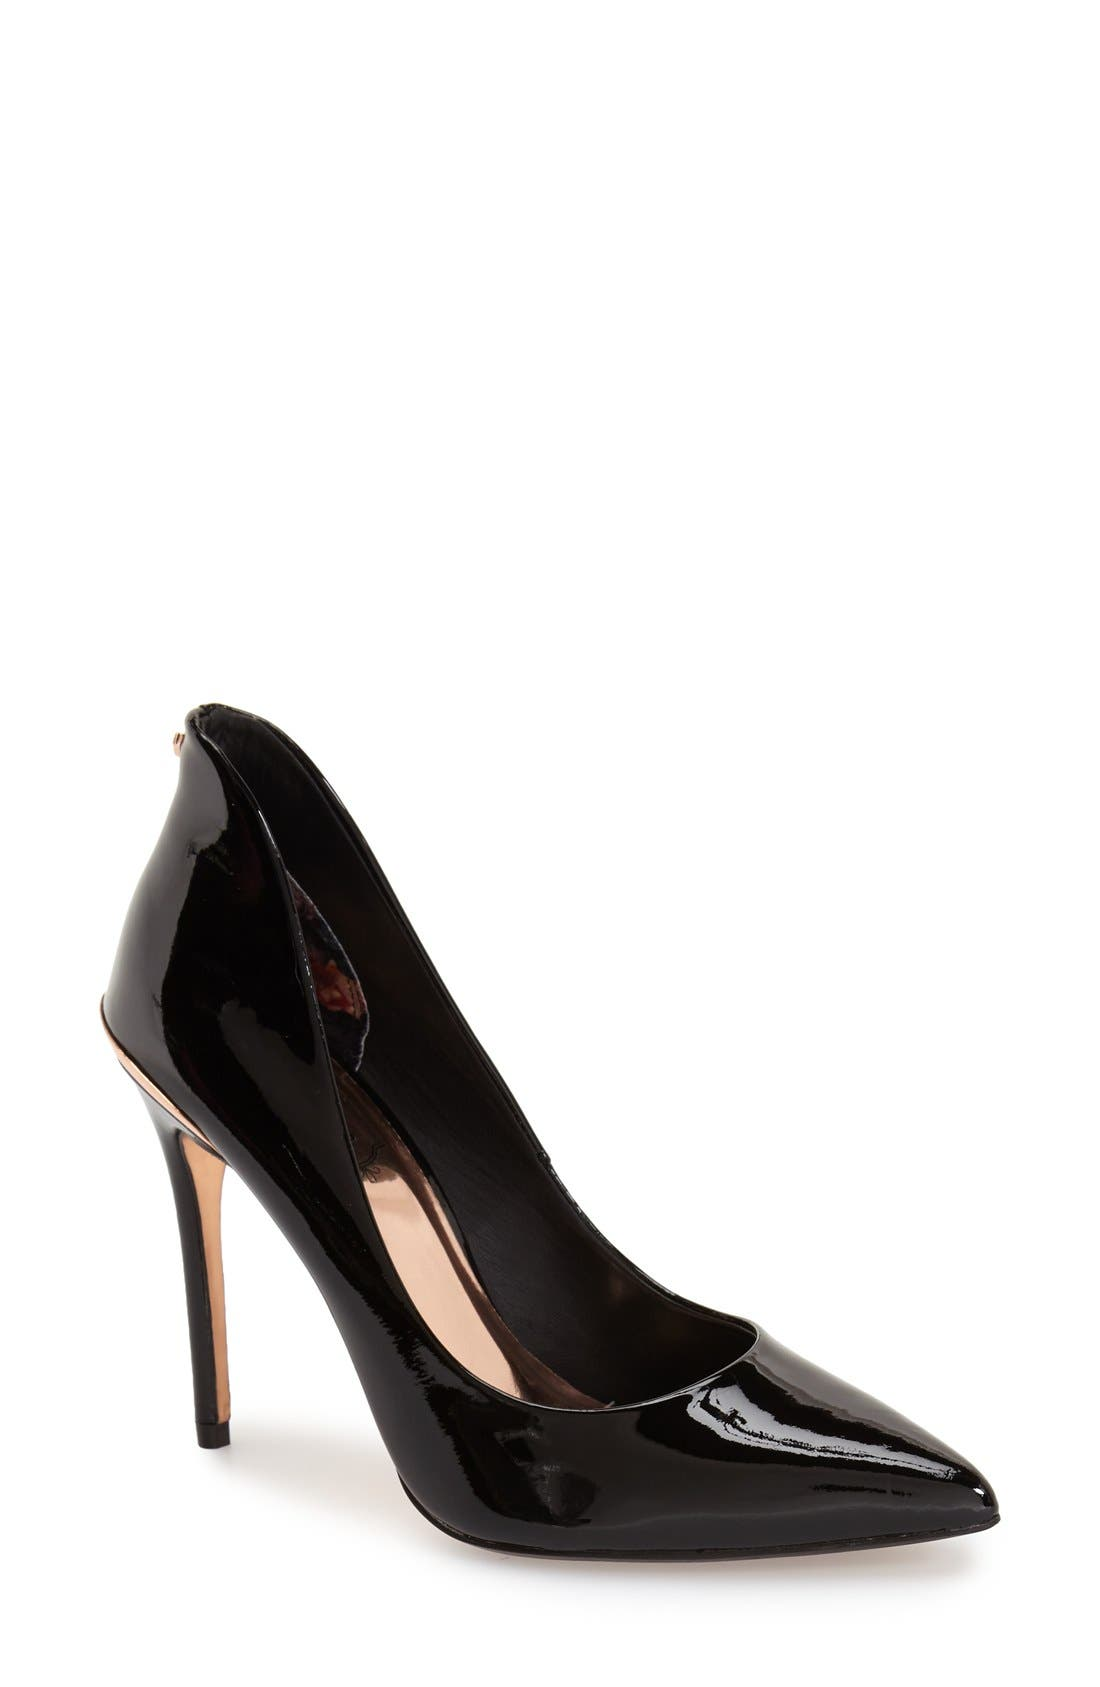 Alternate Image 1 Selected - Ted Baker London 'Savenniers' Pointy Toe Pump (Women)